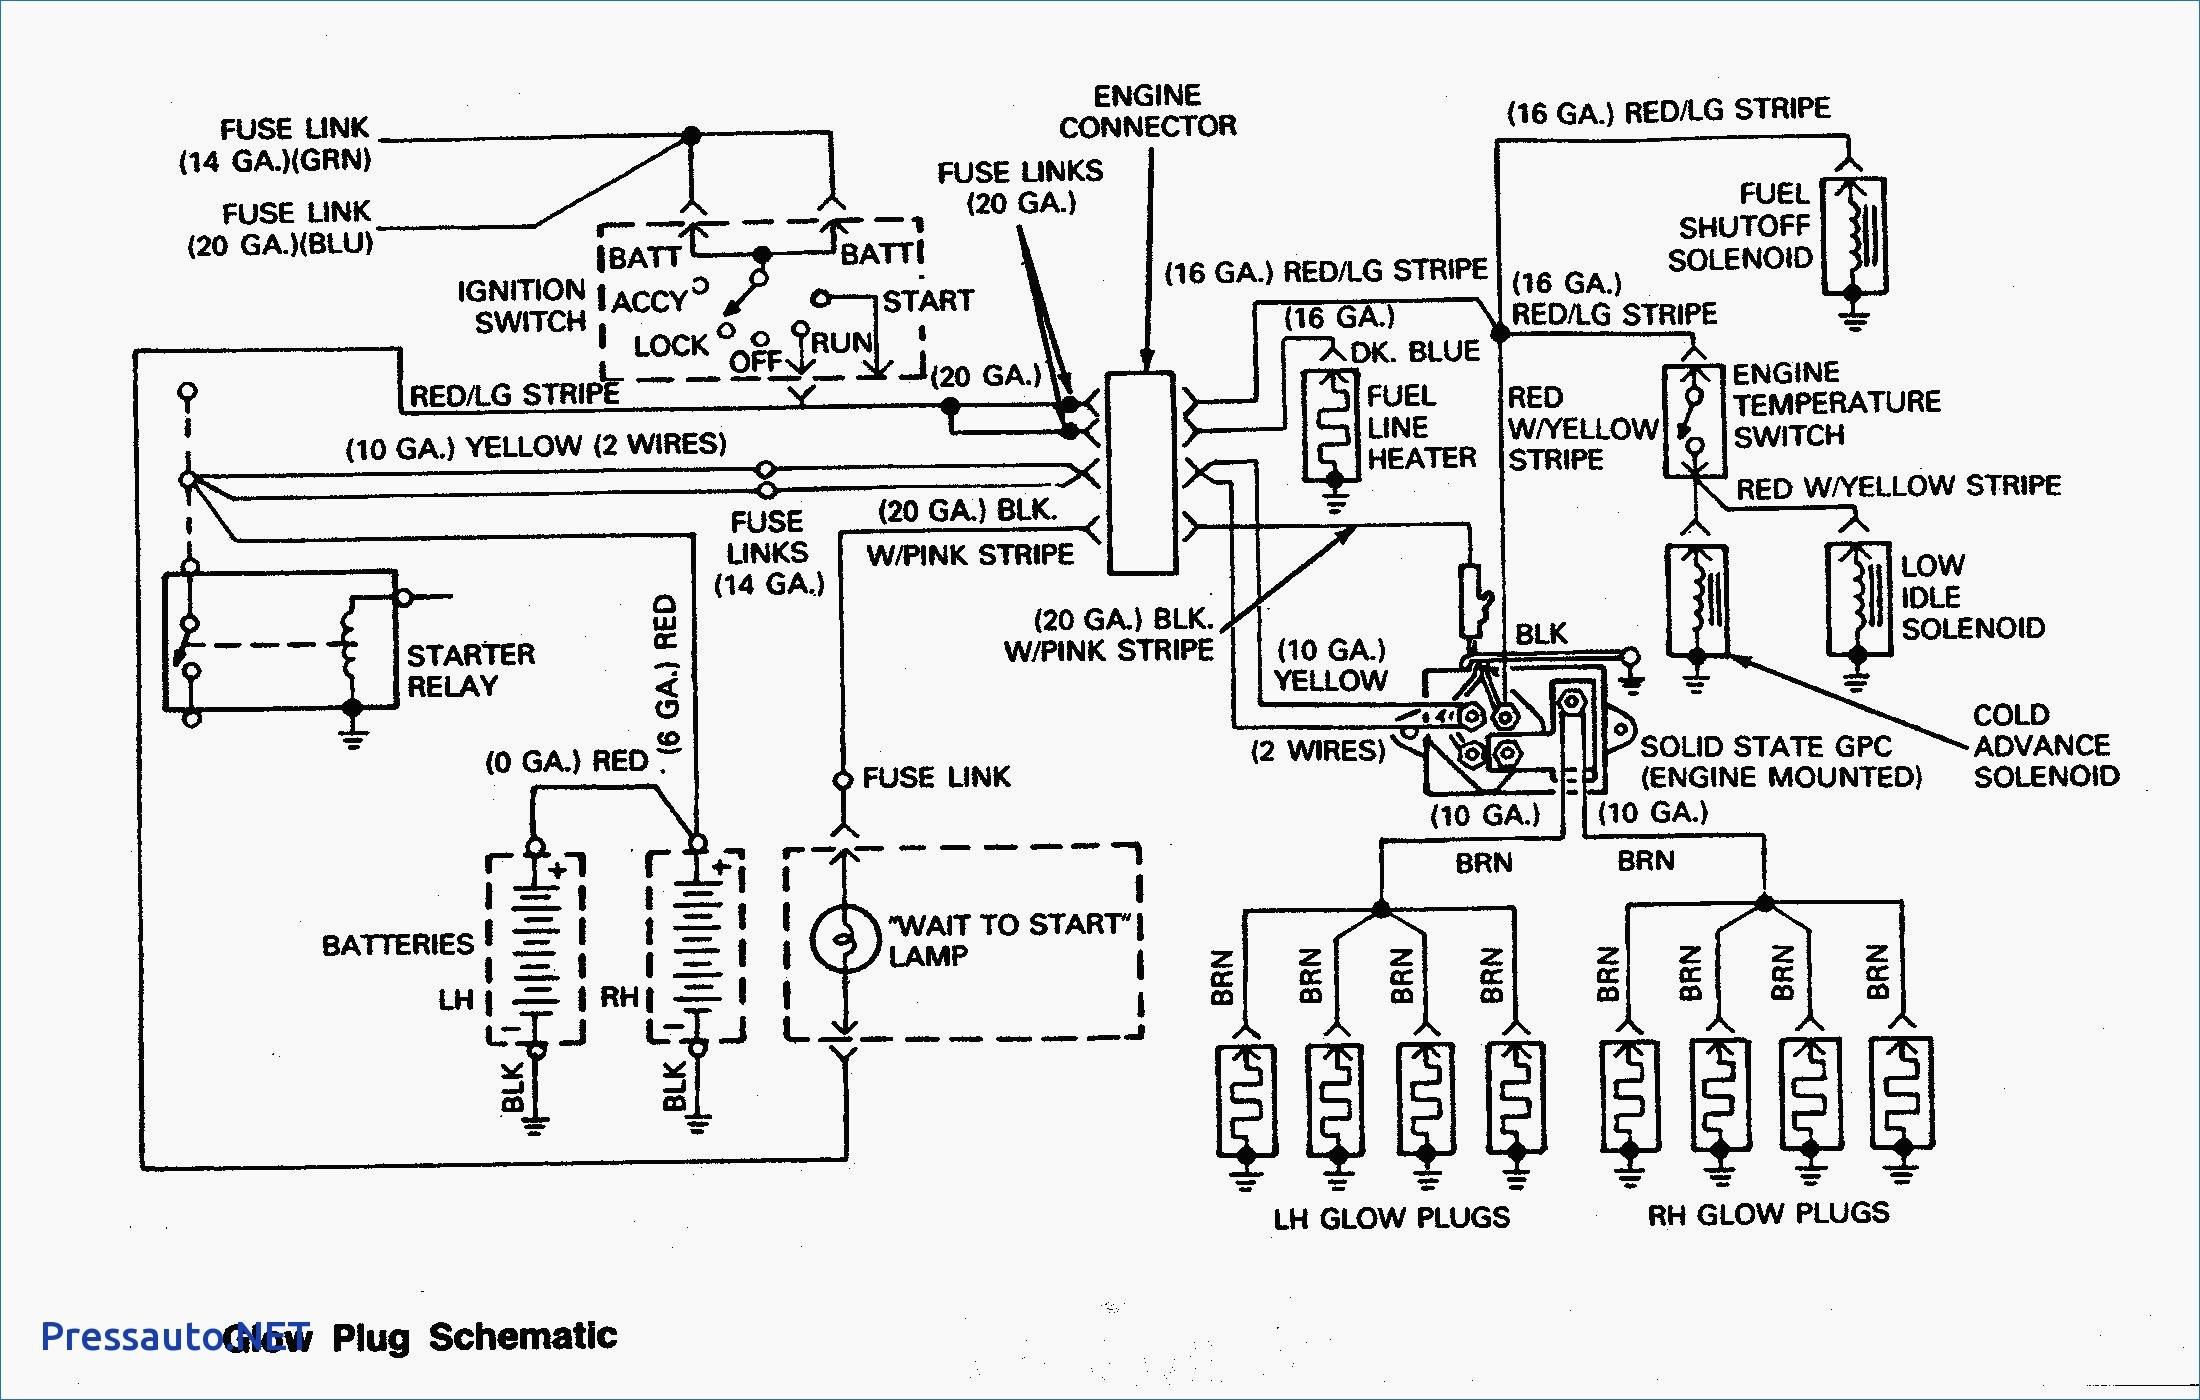 Ford 7 3 Injector Wire Harness - Ford Think Fuse Box Location for Wiring  Diagram SchematicsWiring Diagram Schematics